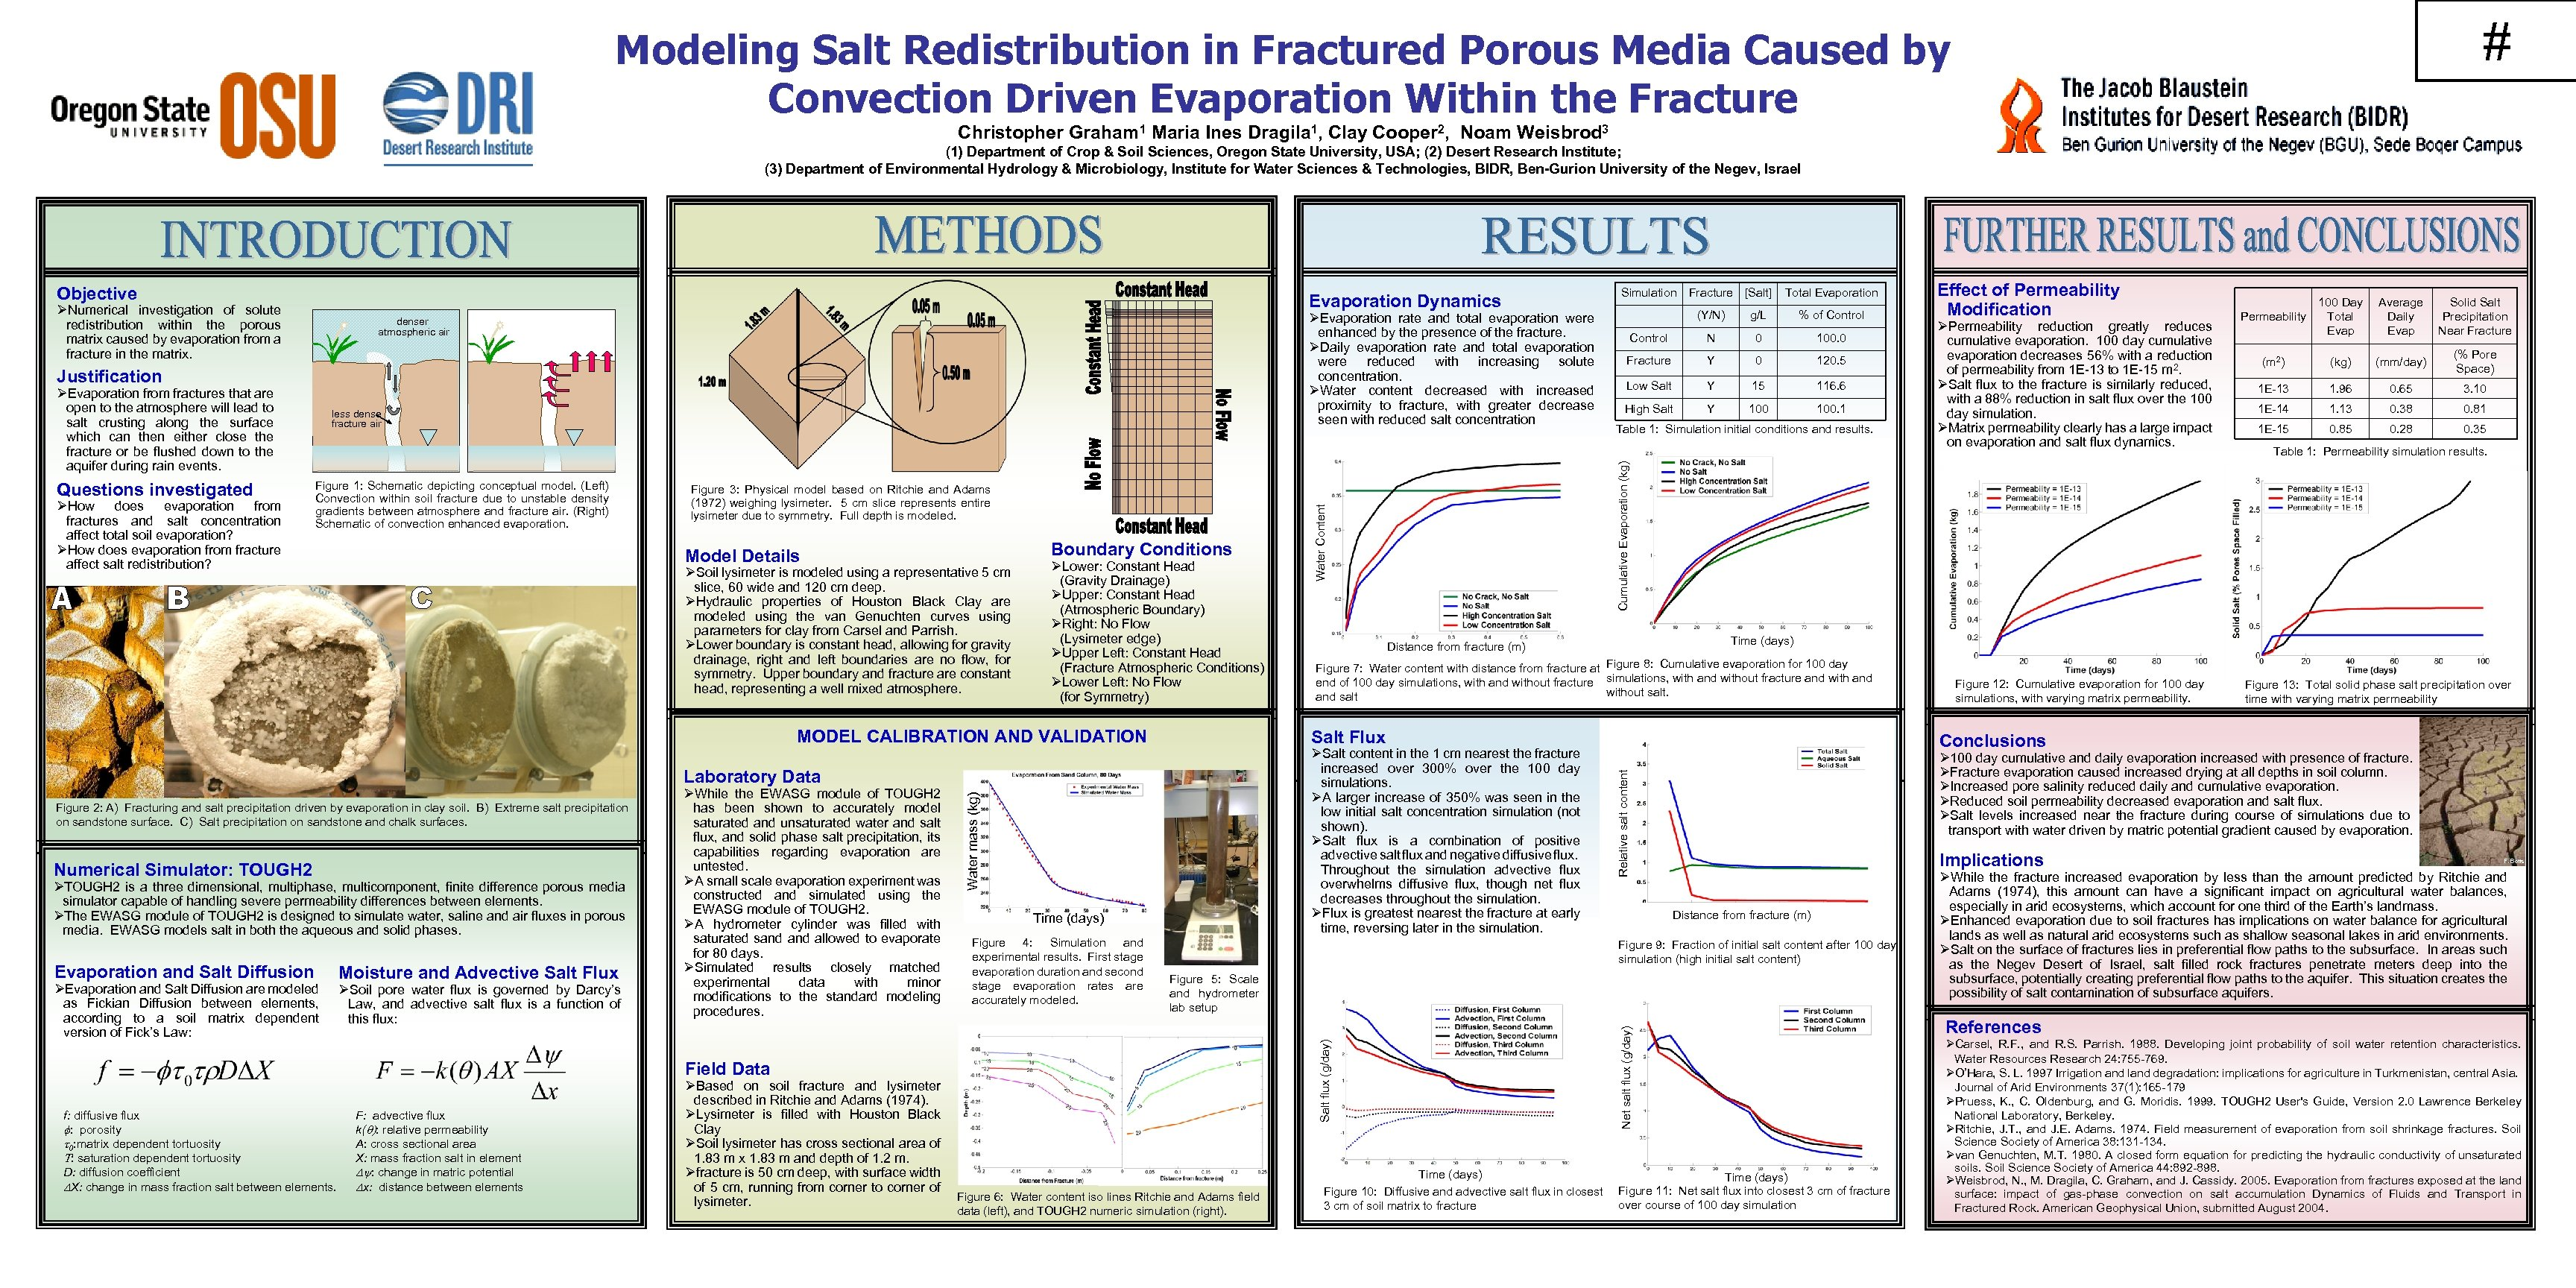 # Modeling Salt Redistribution in Fractured Porous Media Caused by Convection Driven Evaporation Within